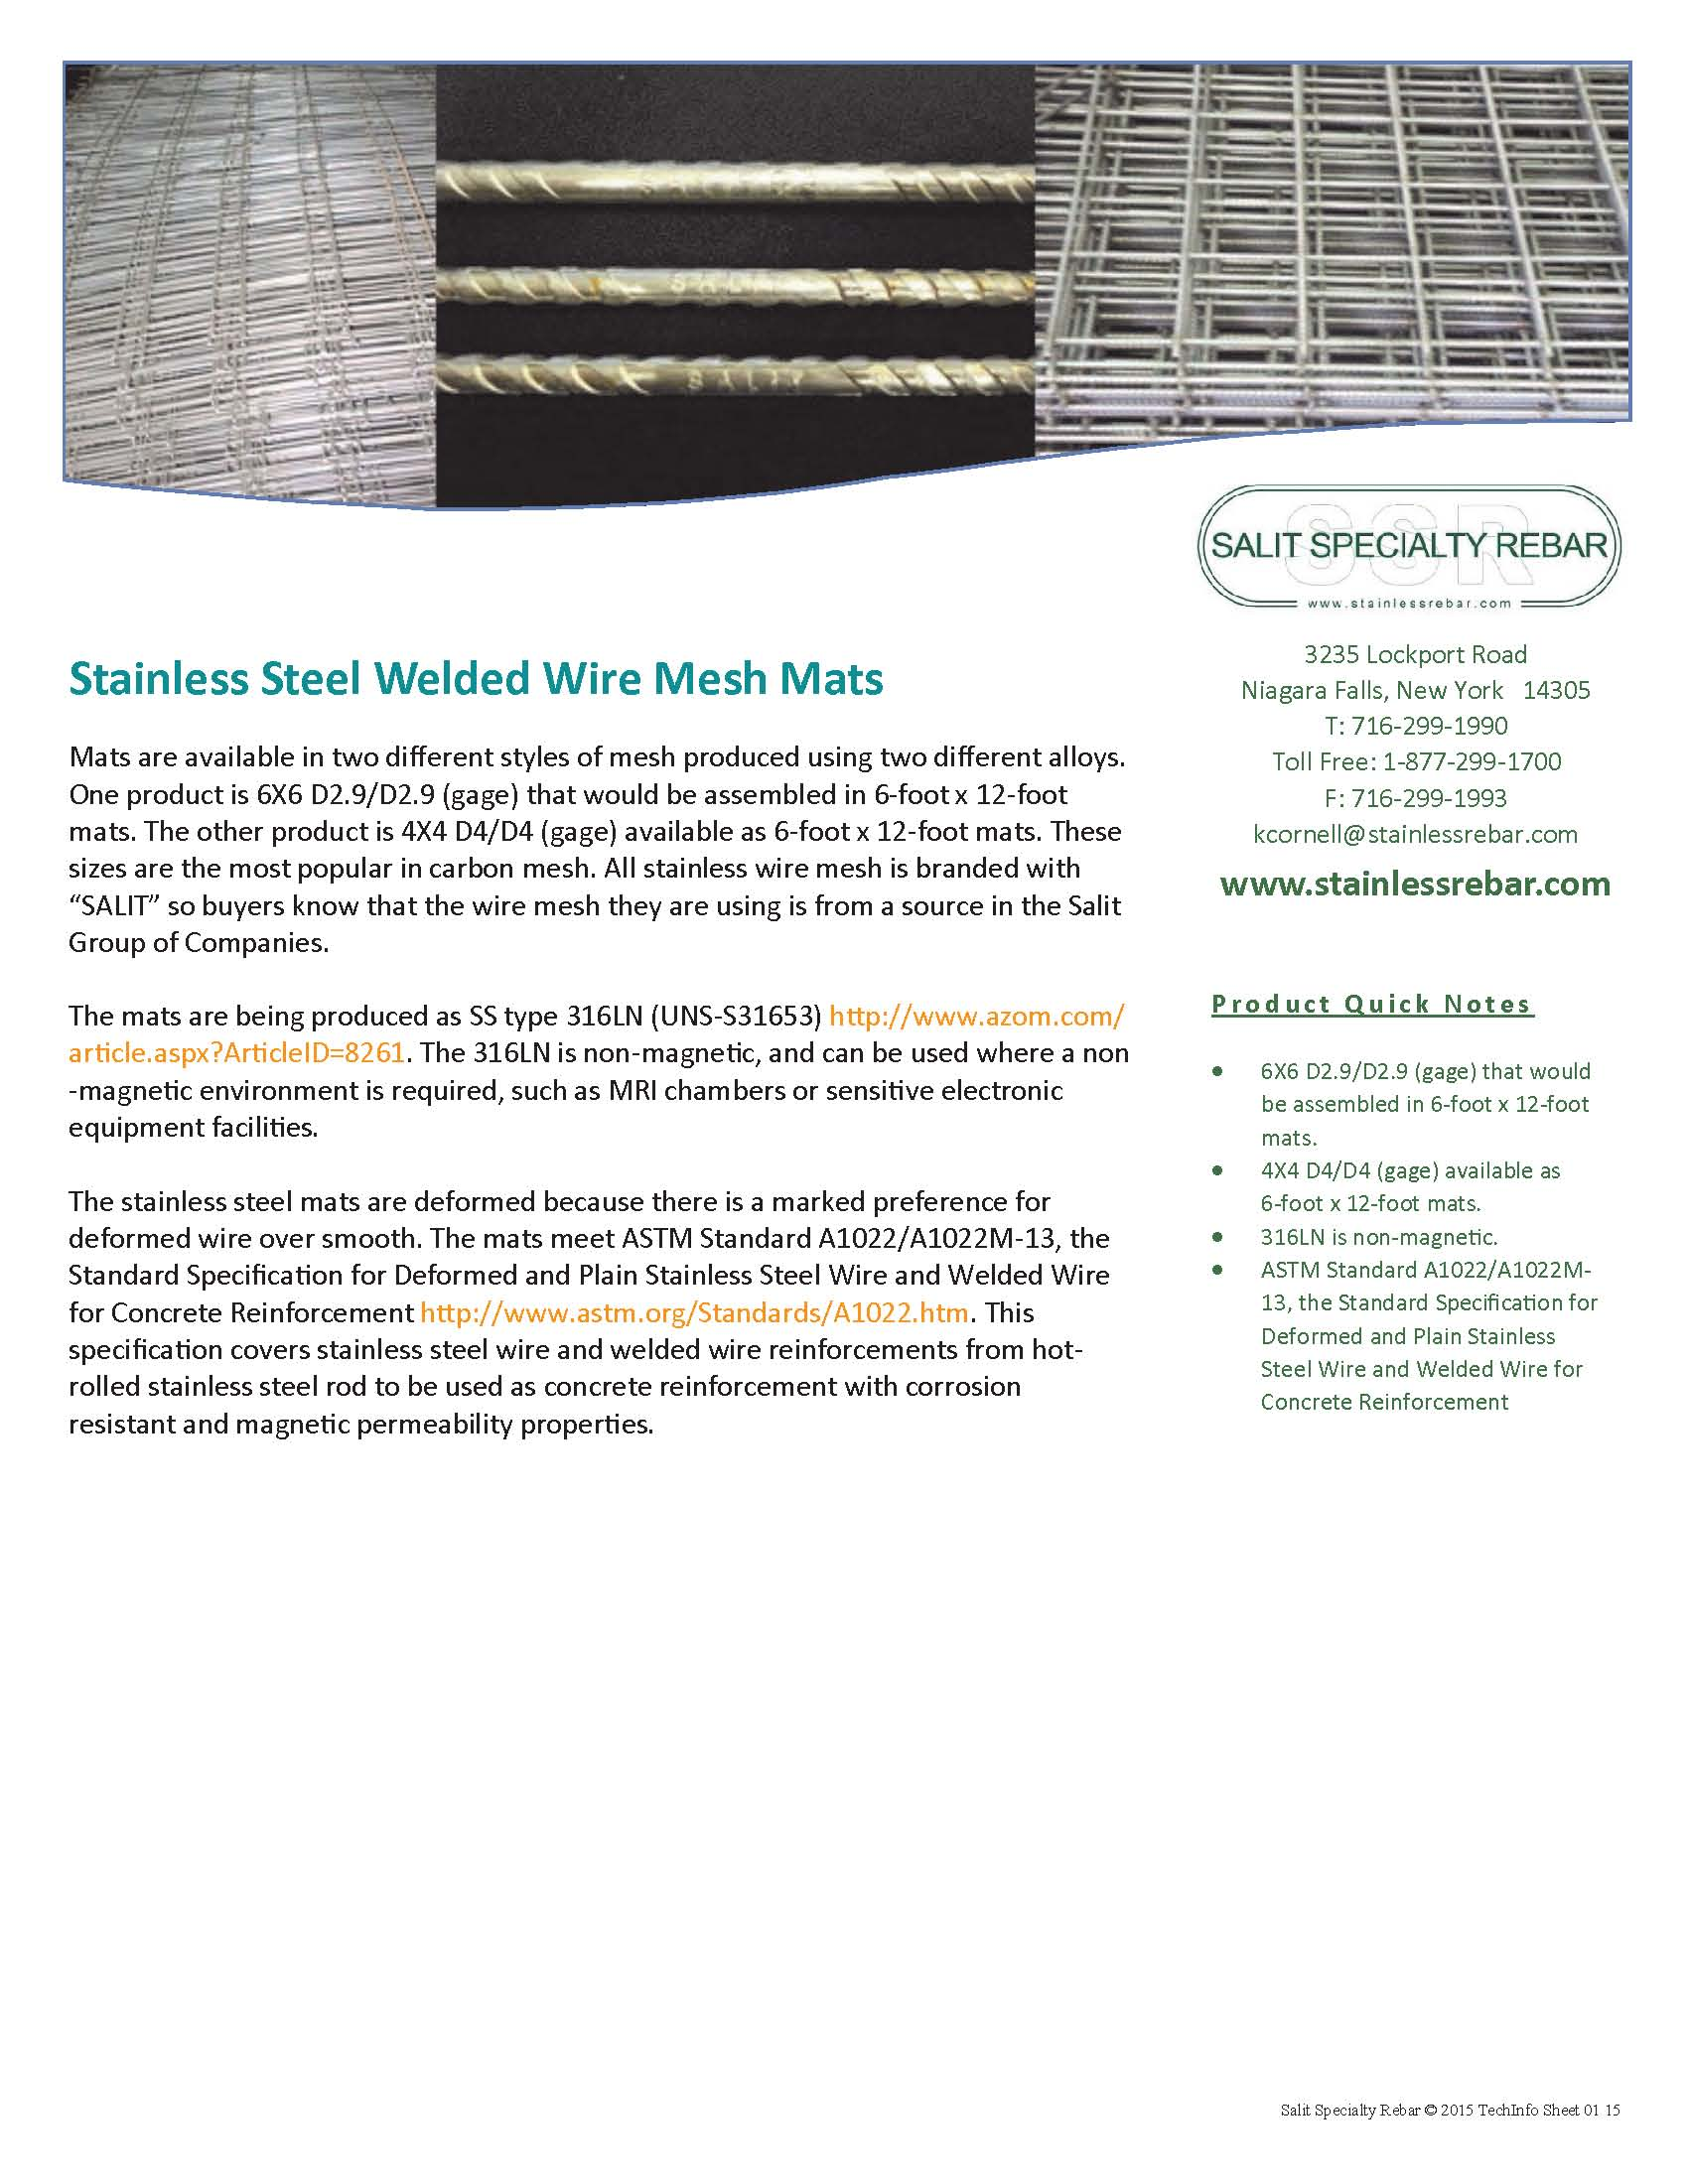 Stelcrete industries limited salit speciaty rebar stainless steel welded wire mats greentooth Images